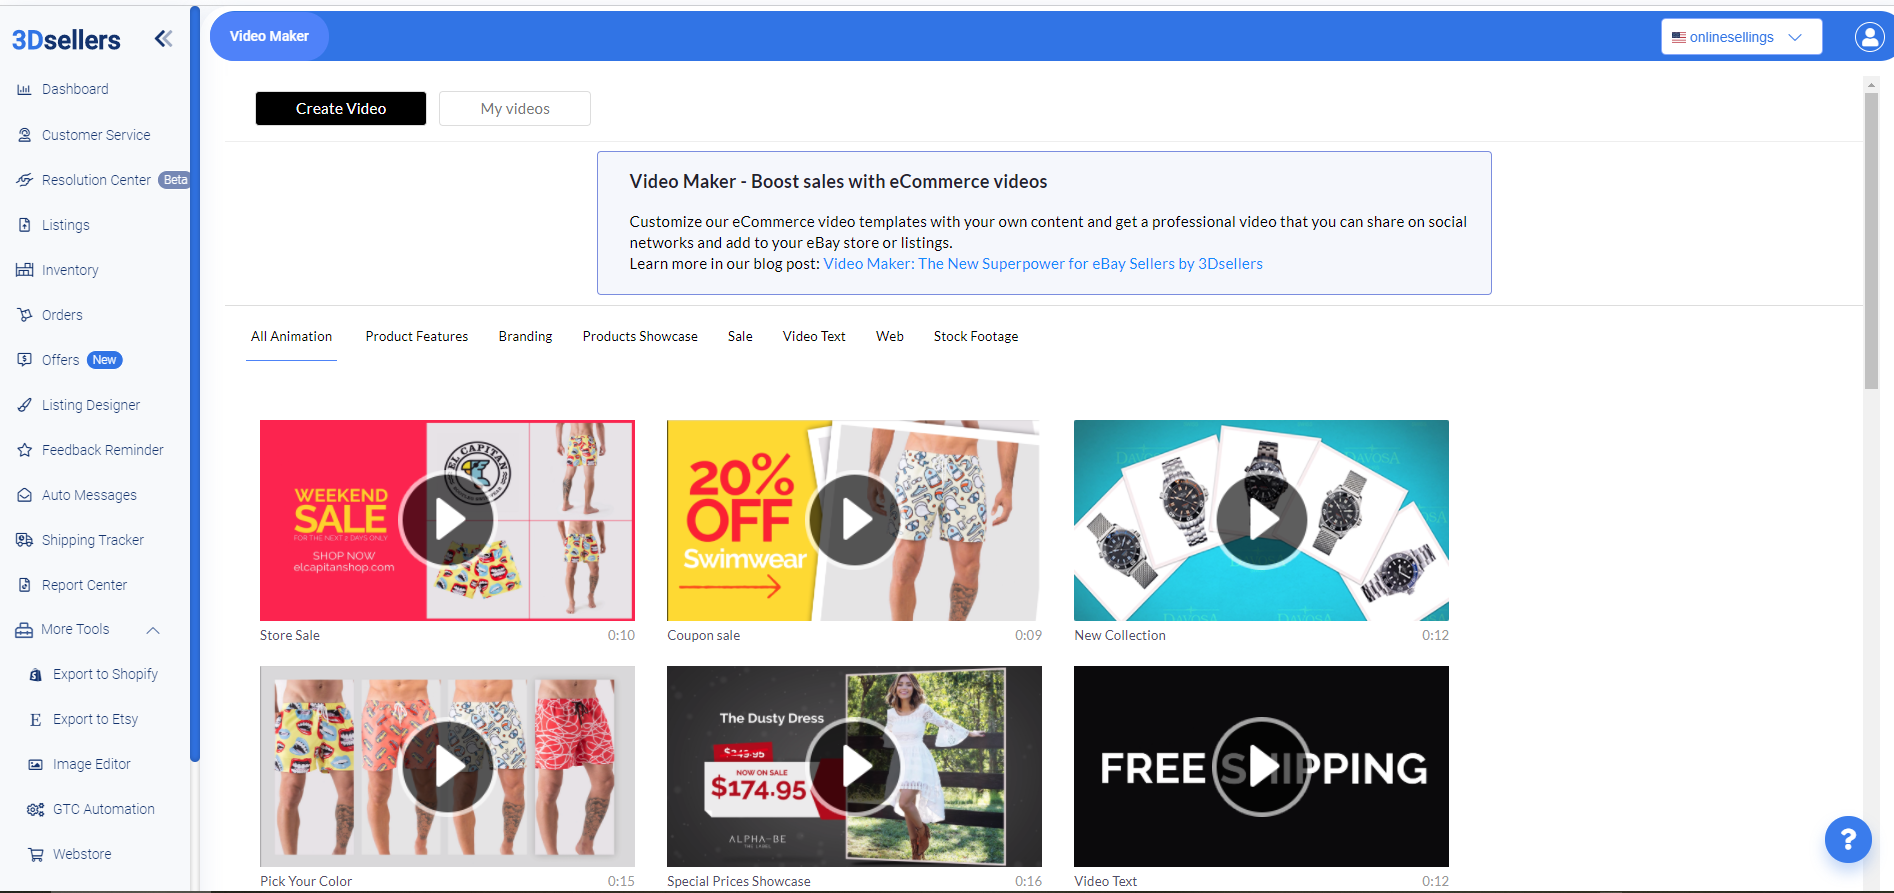 All your eCommerce channels in one place